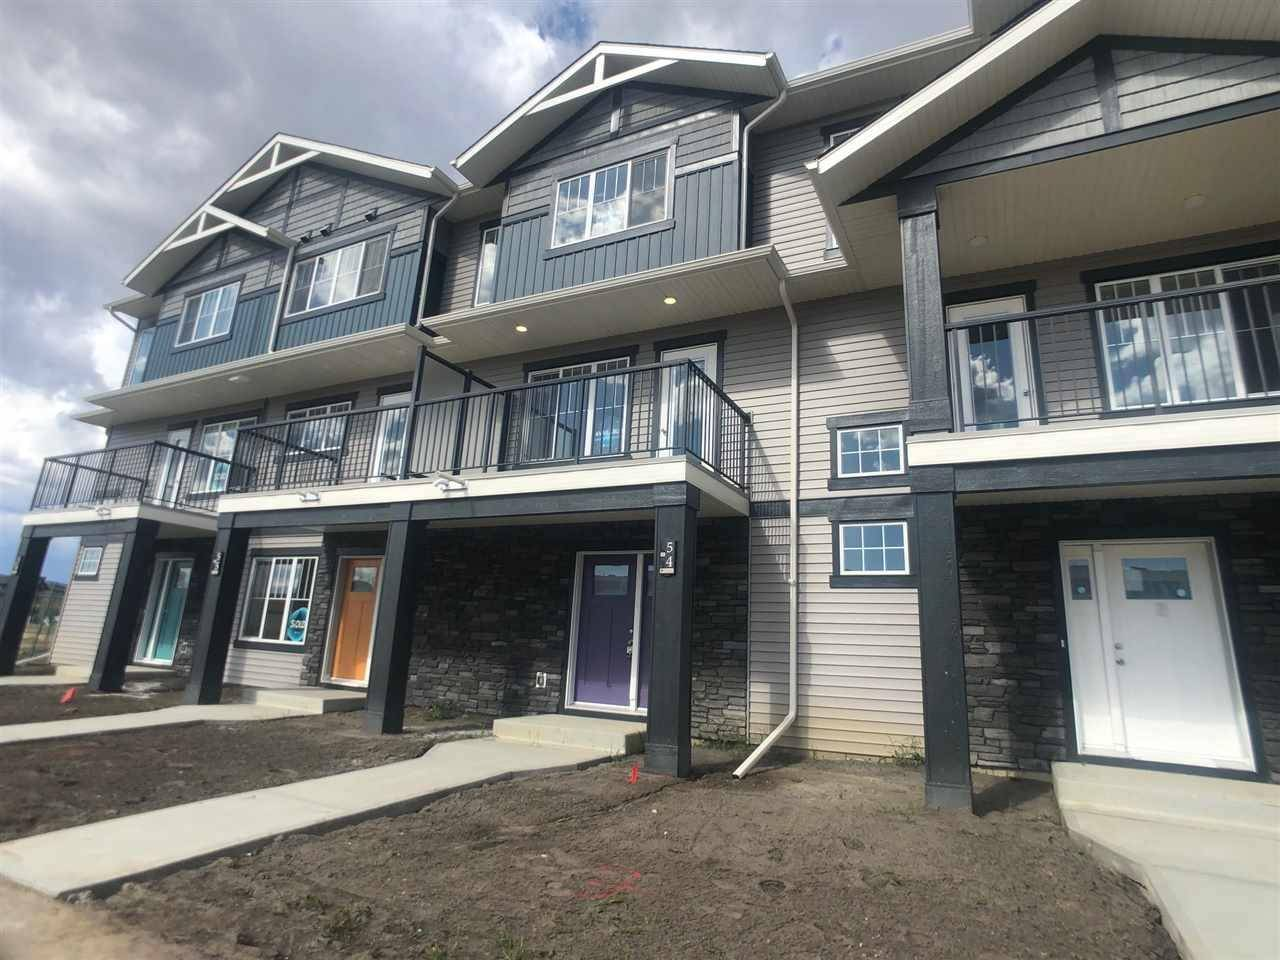 Townhouse for sale at 50 Mclaughlin Dr Unit 54 Spruce Grove Alberta - MLS: E4182712